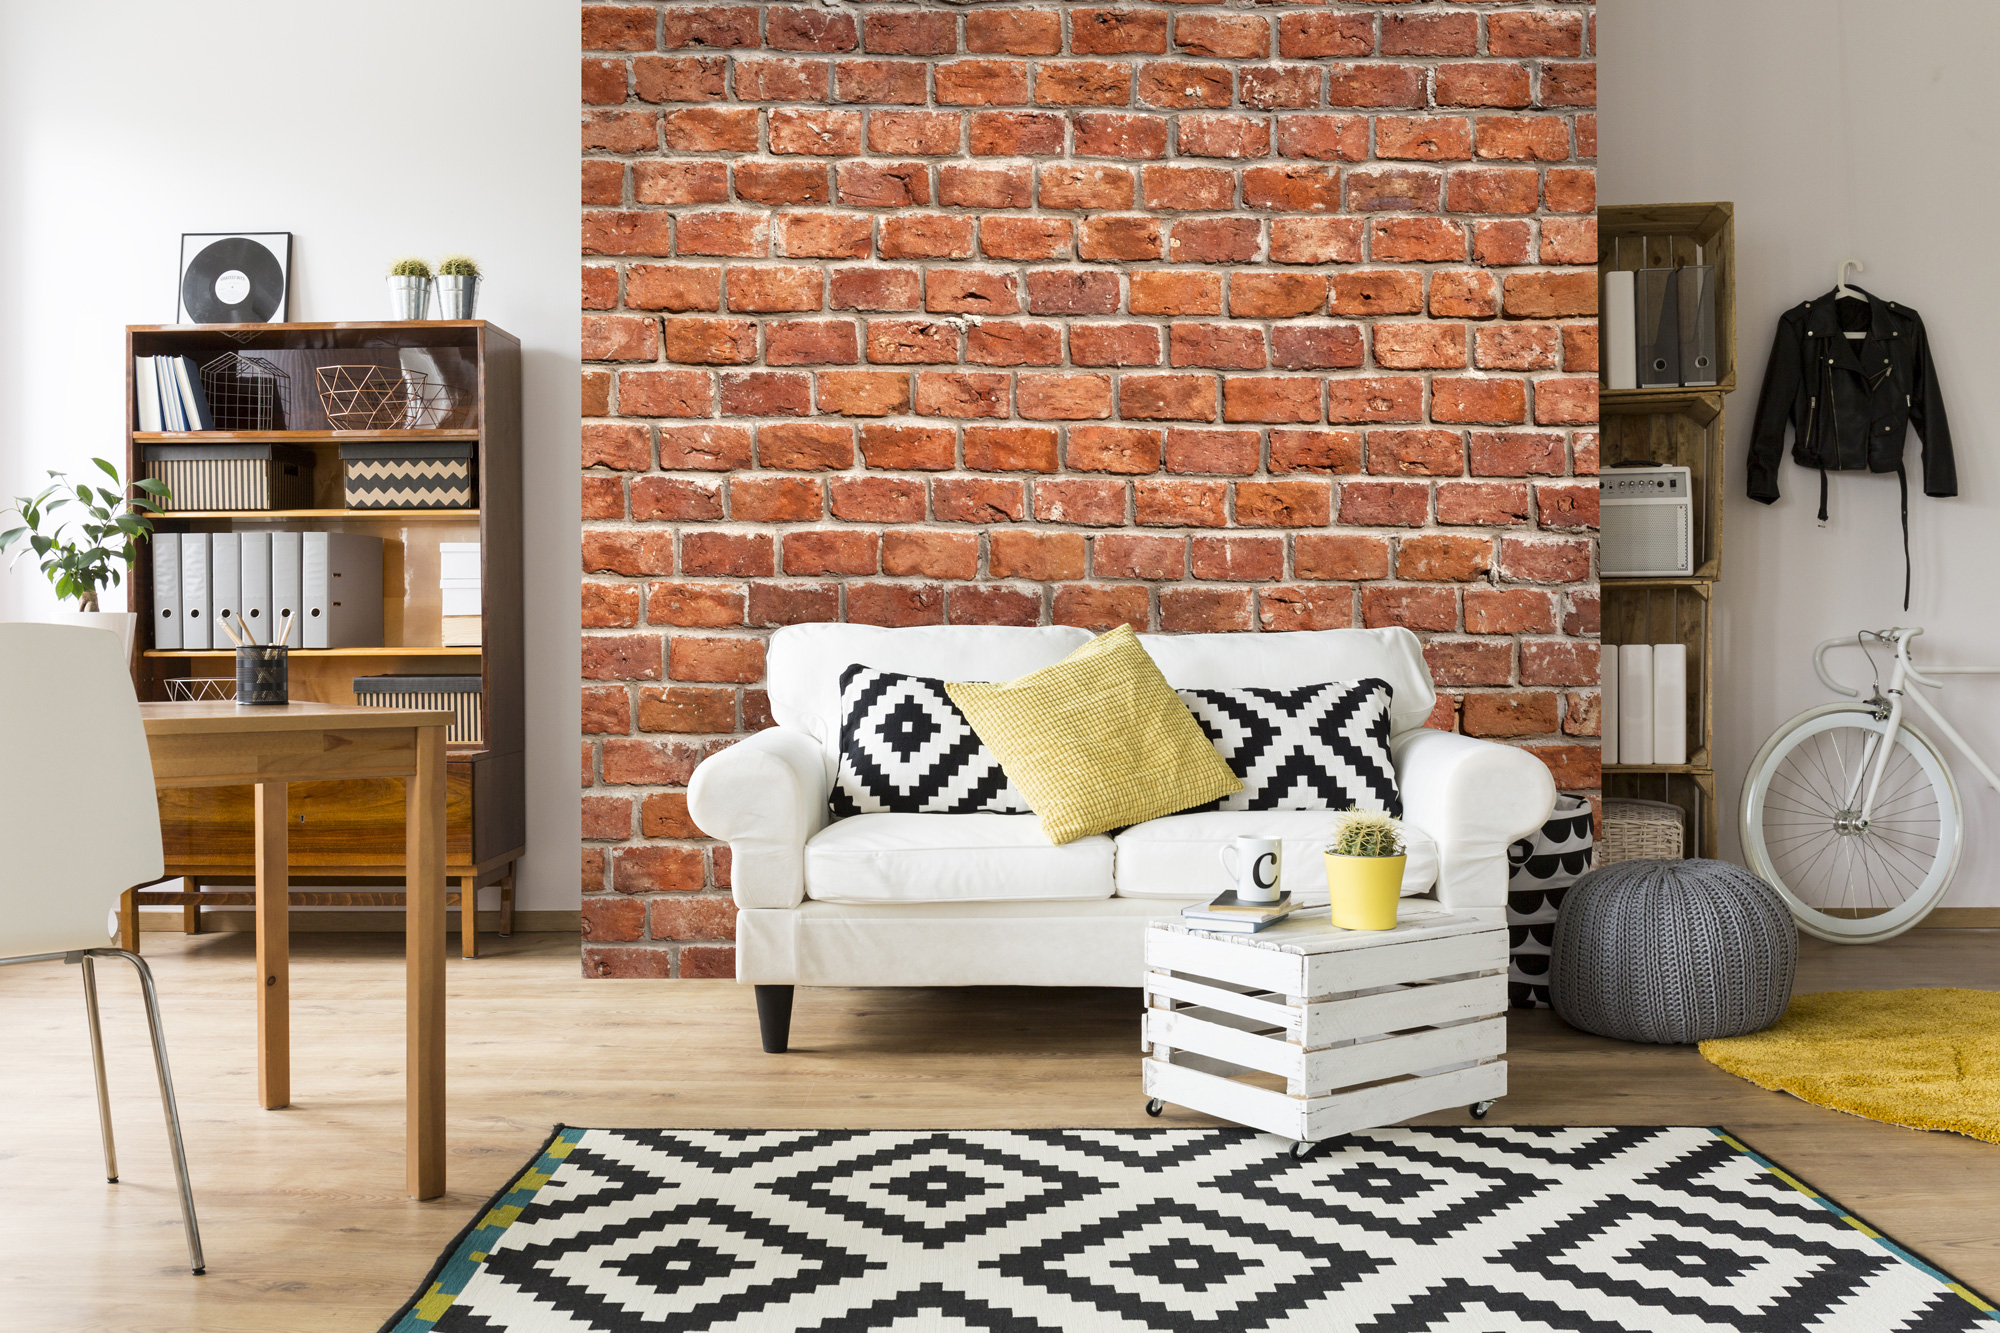 Feature Wallpaper Ideas That Will Suit Any Room Wallsauce Dk